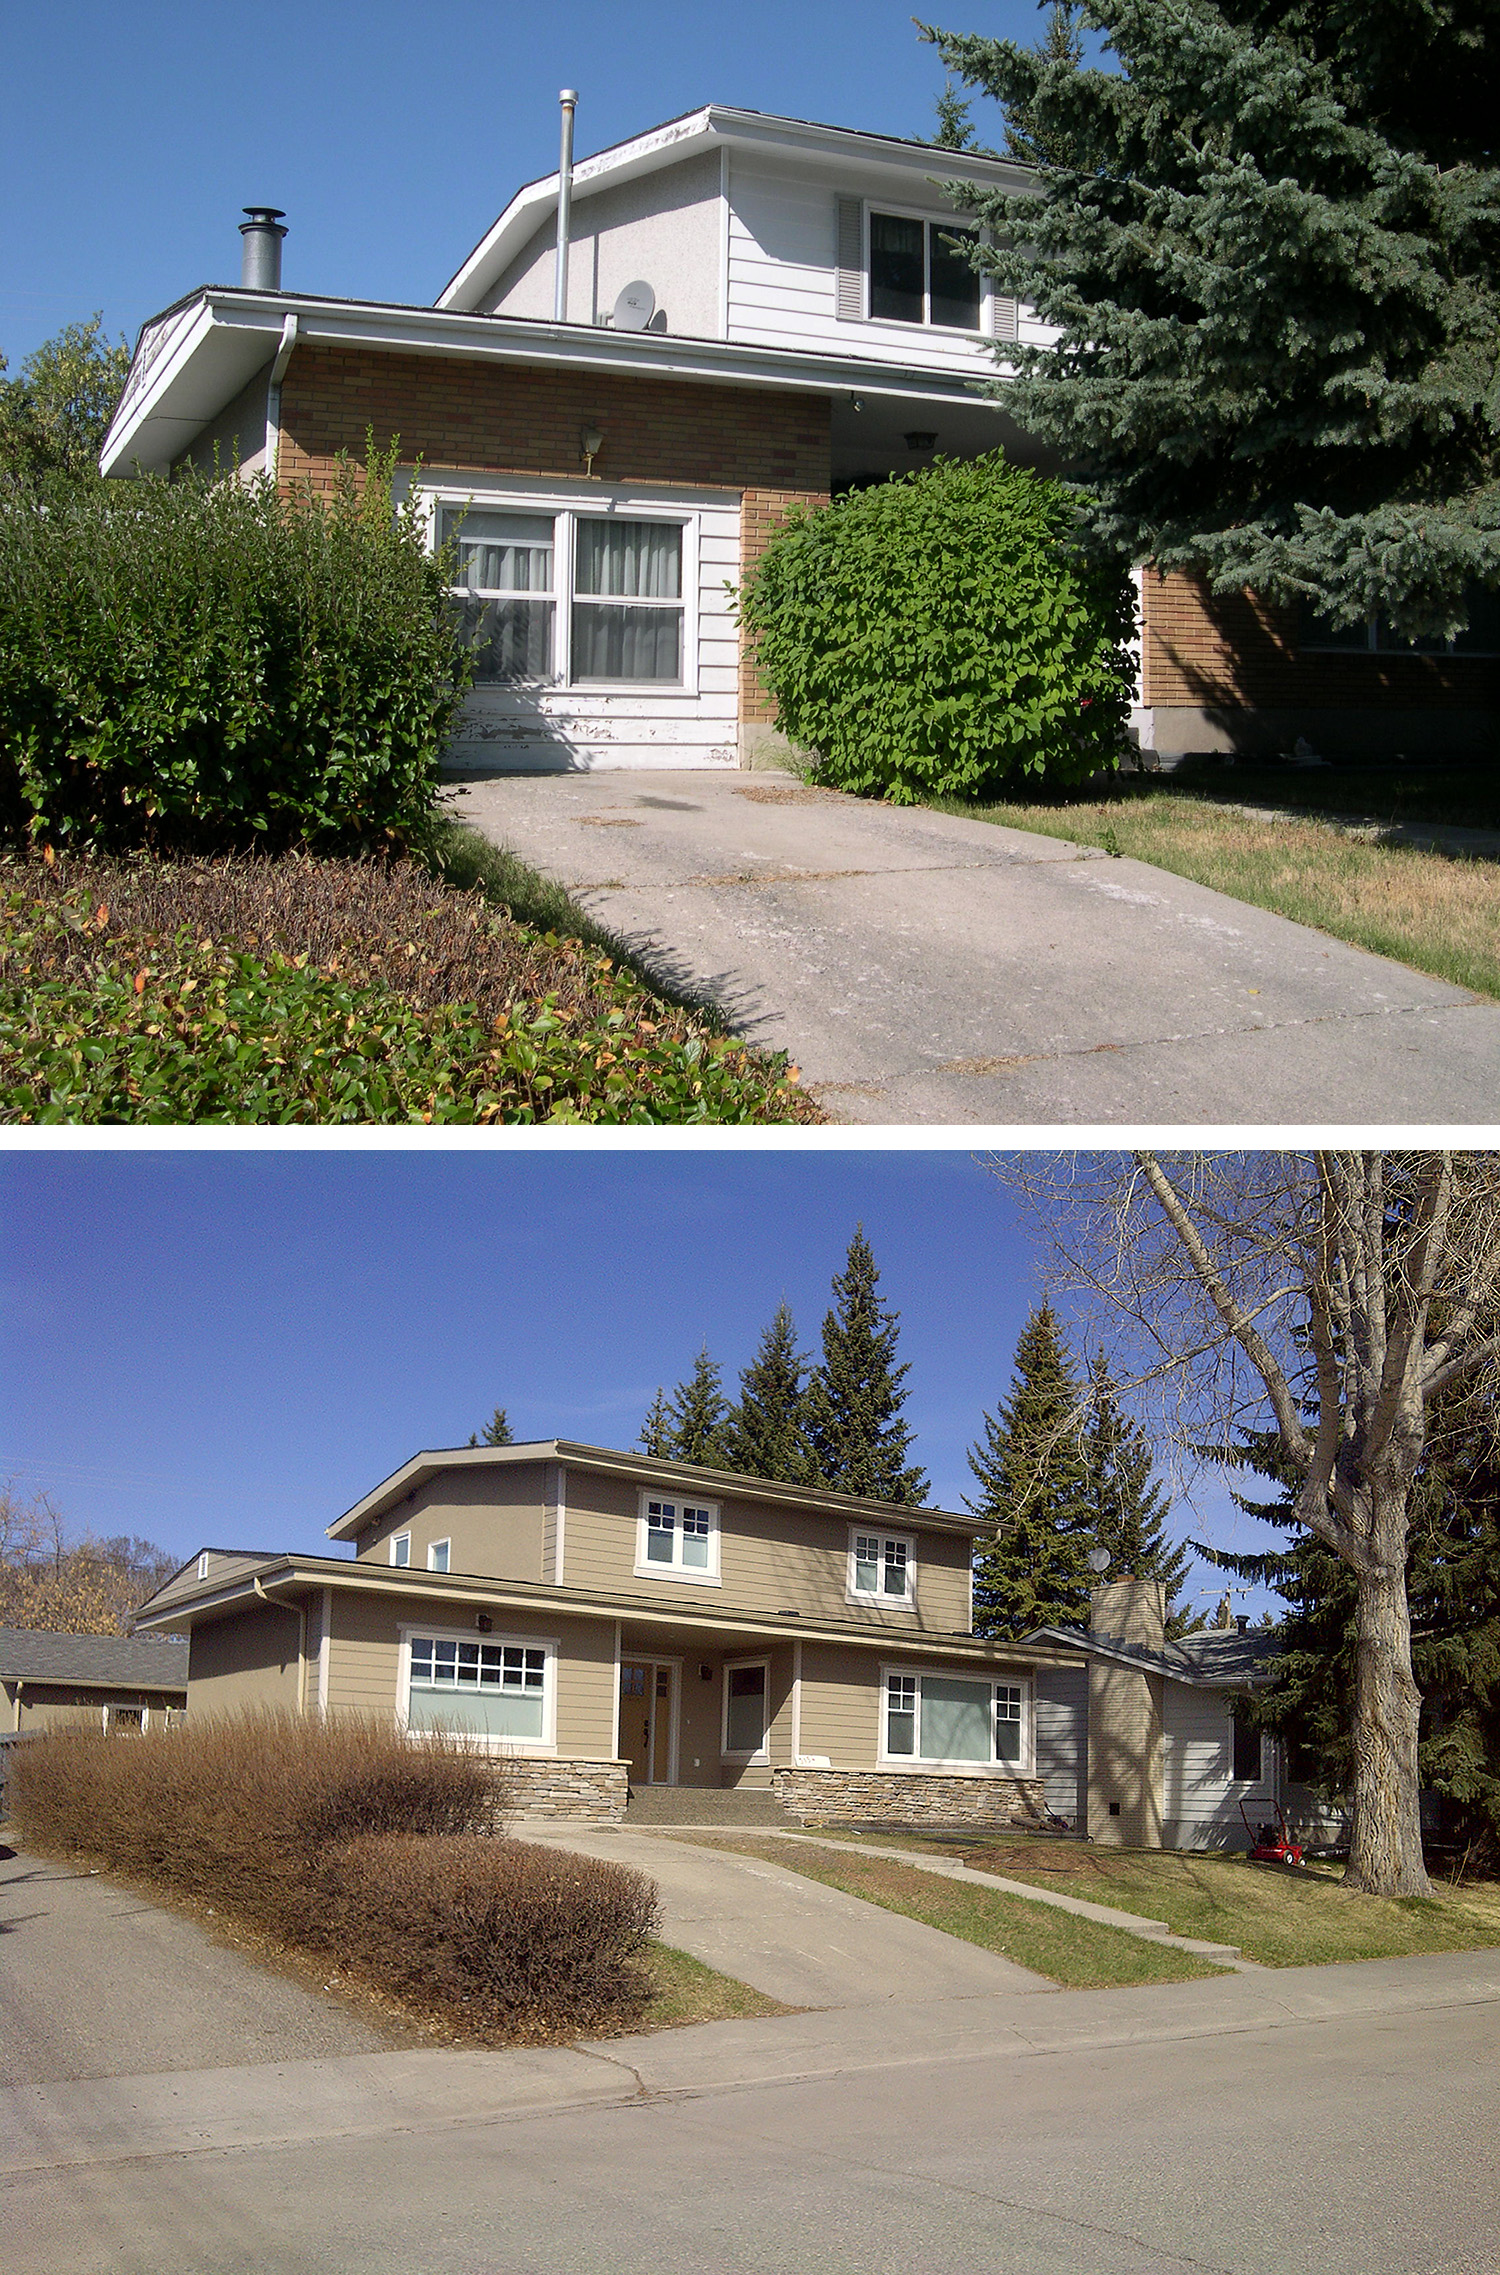 Before & After of an Exterior Renovation in the Calgary community of Lakeview